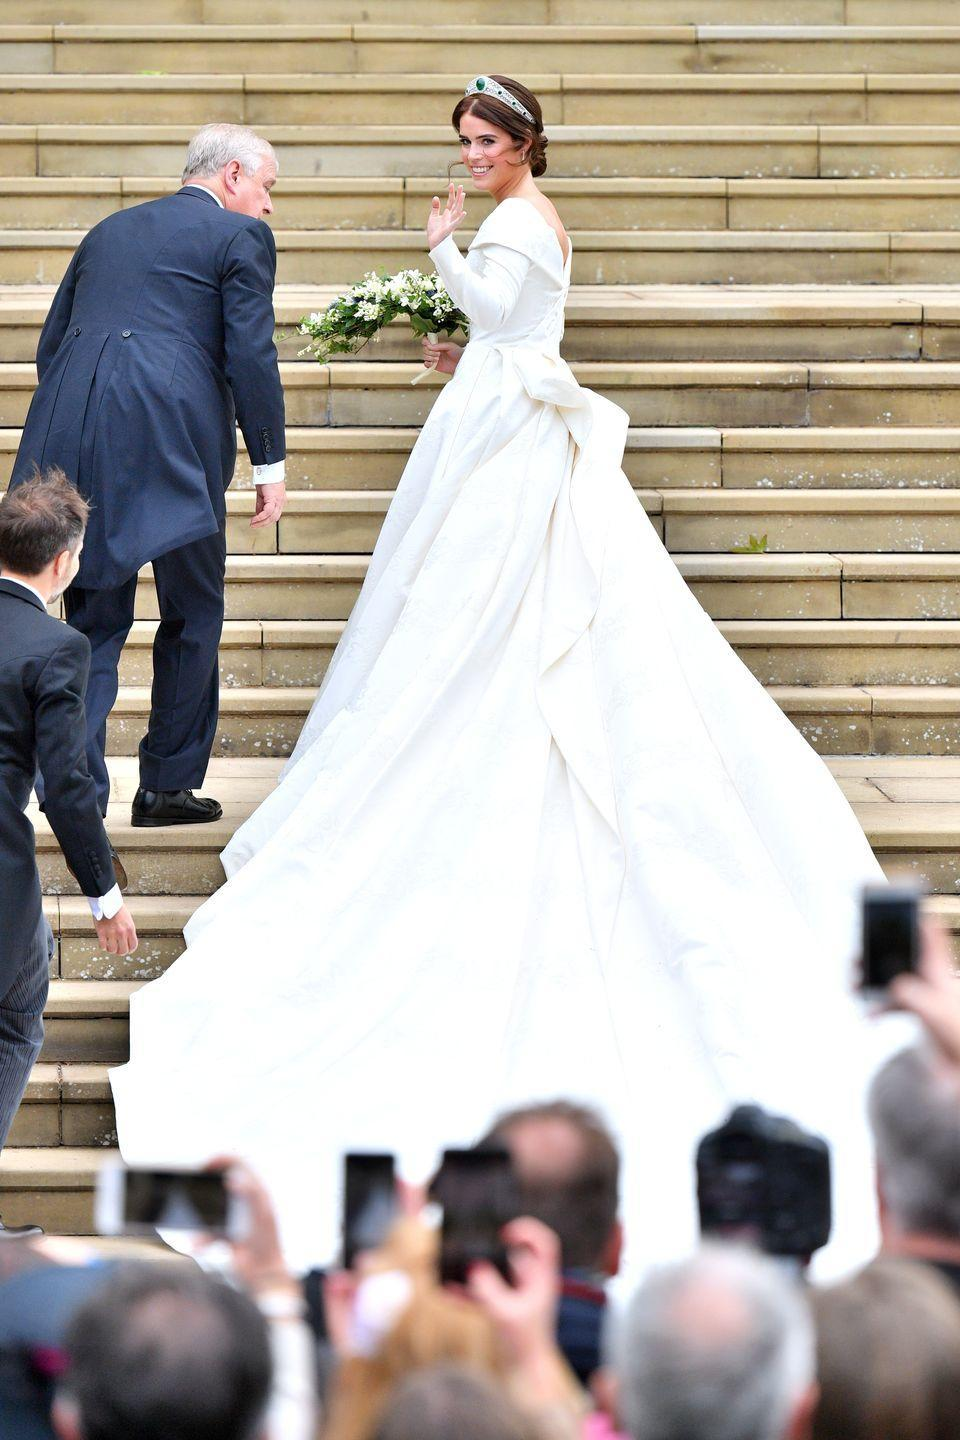 <p>Princess Eugenie wore a gown created custom for her by Peter Pilotto and Christopher de Vos for her wedding to Jack Brooksbank. She specifically requested an open back and chose to forgo a veil to show off her scar from her scoliosis surgery.</p>